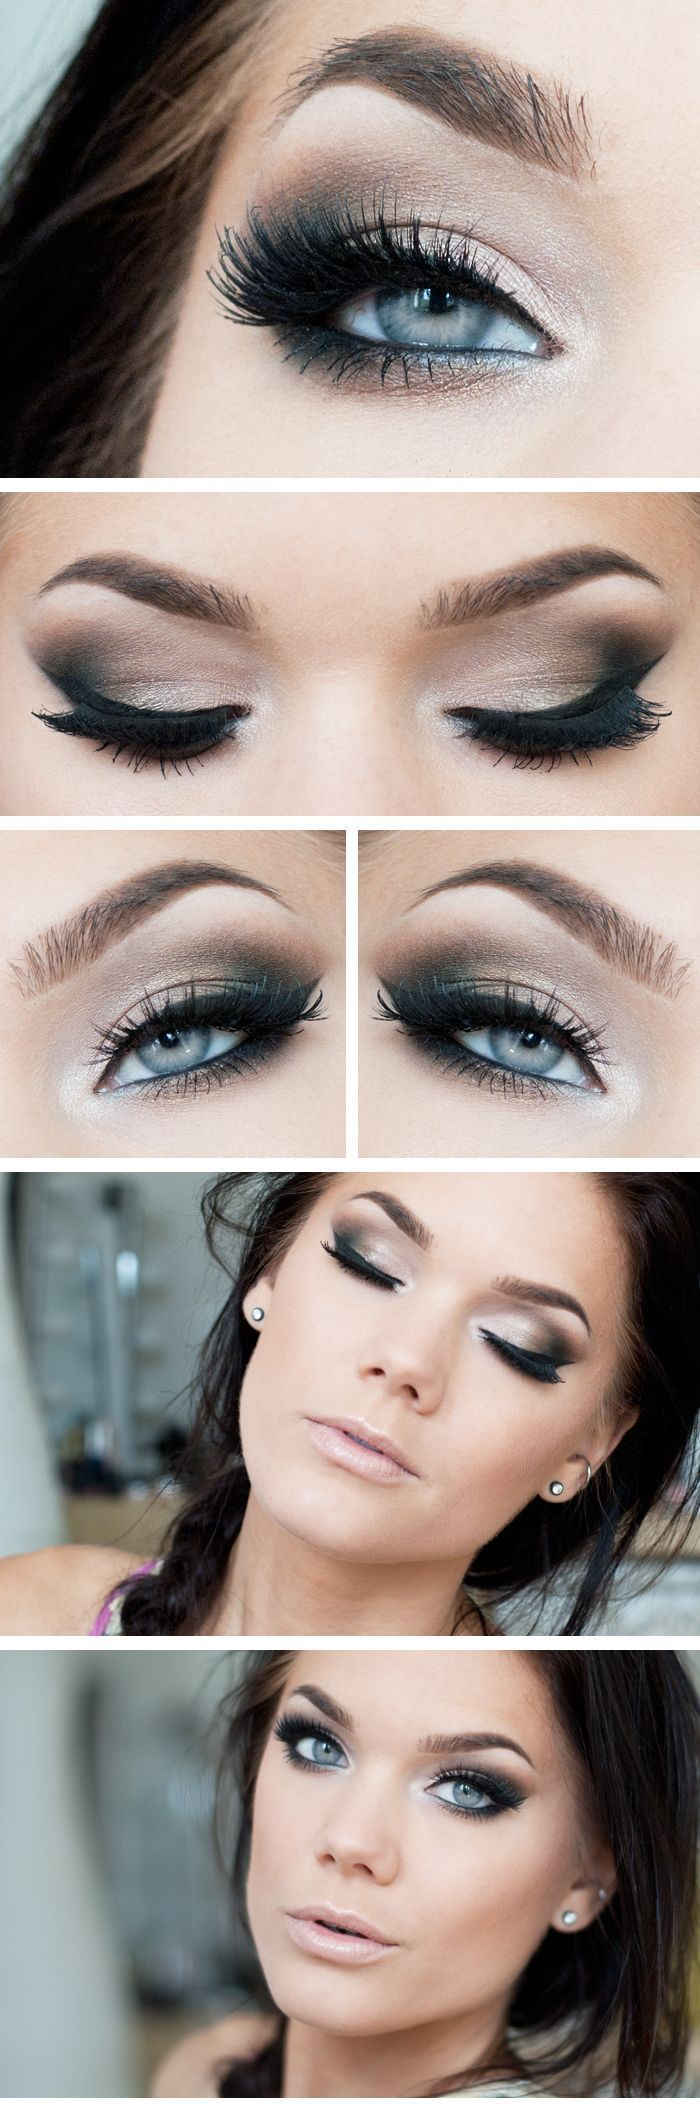 best 25+ makeup for blue eyes ideas only on pinterest | blue eye